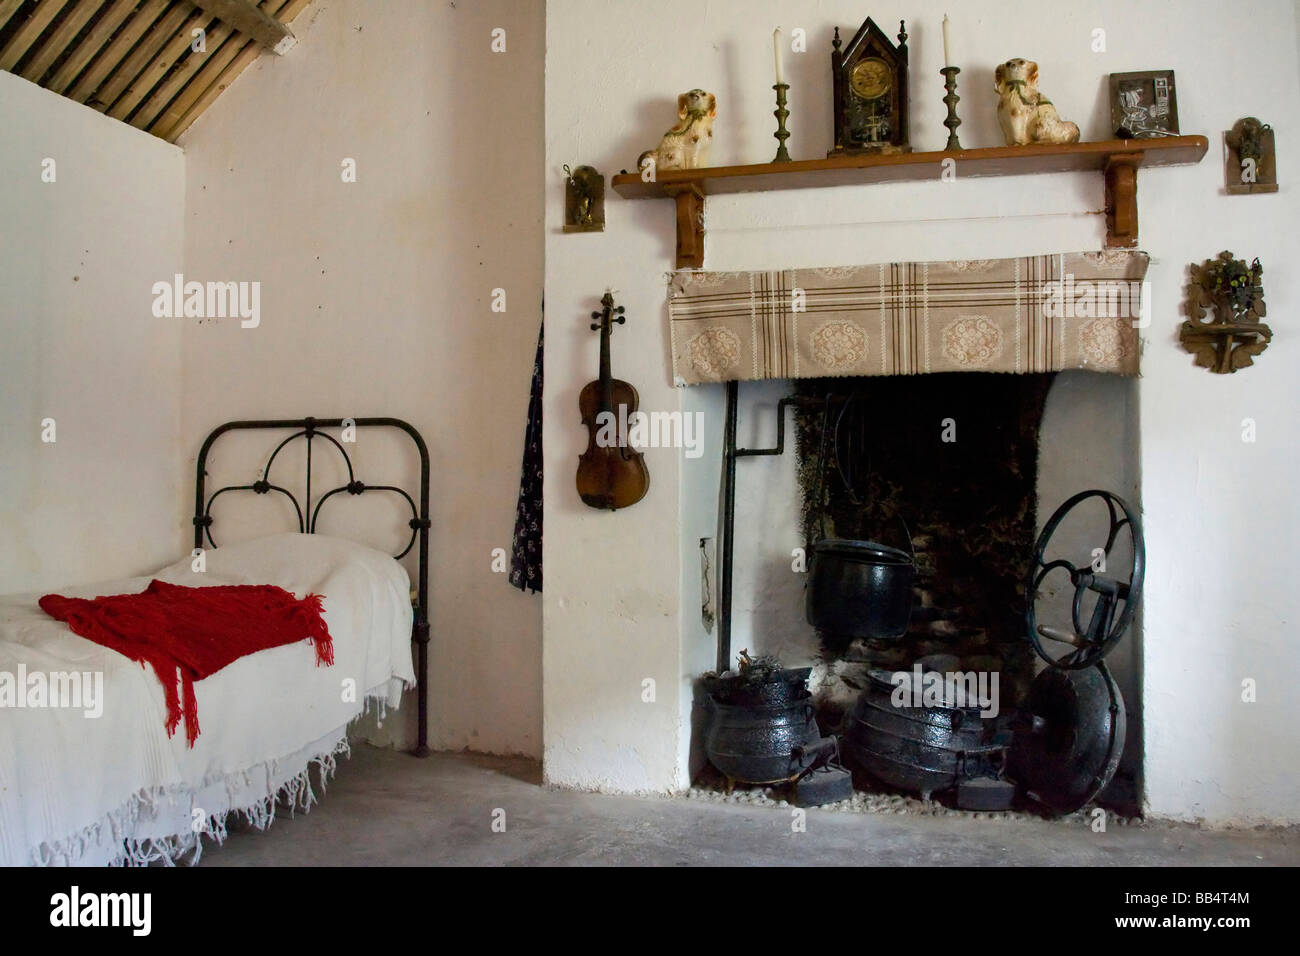 Europe Ireland Gleann Cholm Chille Interior Of A Replica Thatched Roof Cottage From The 1850s